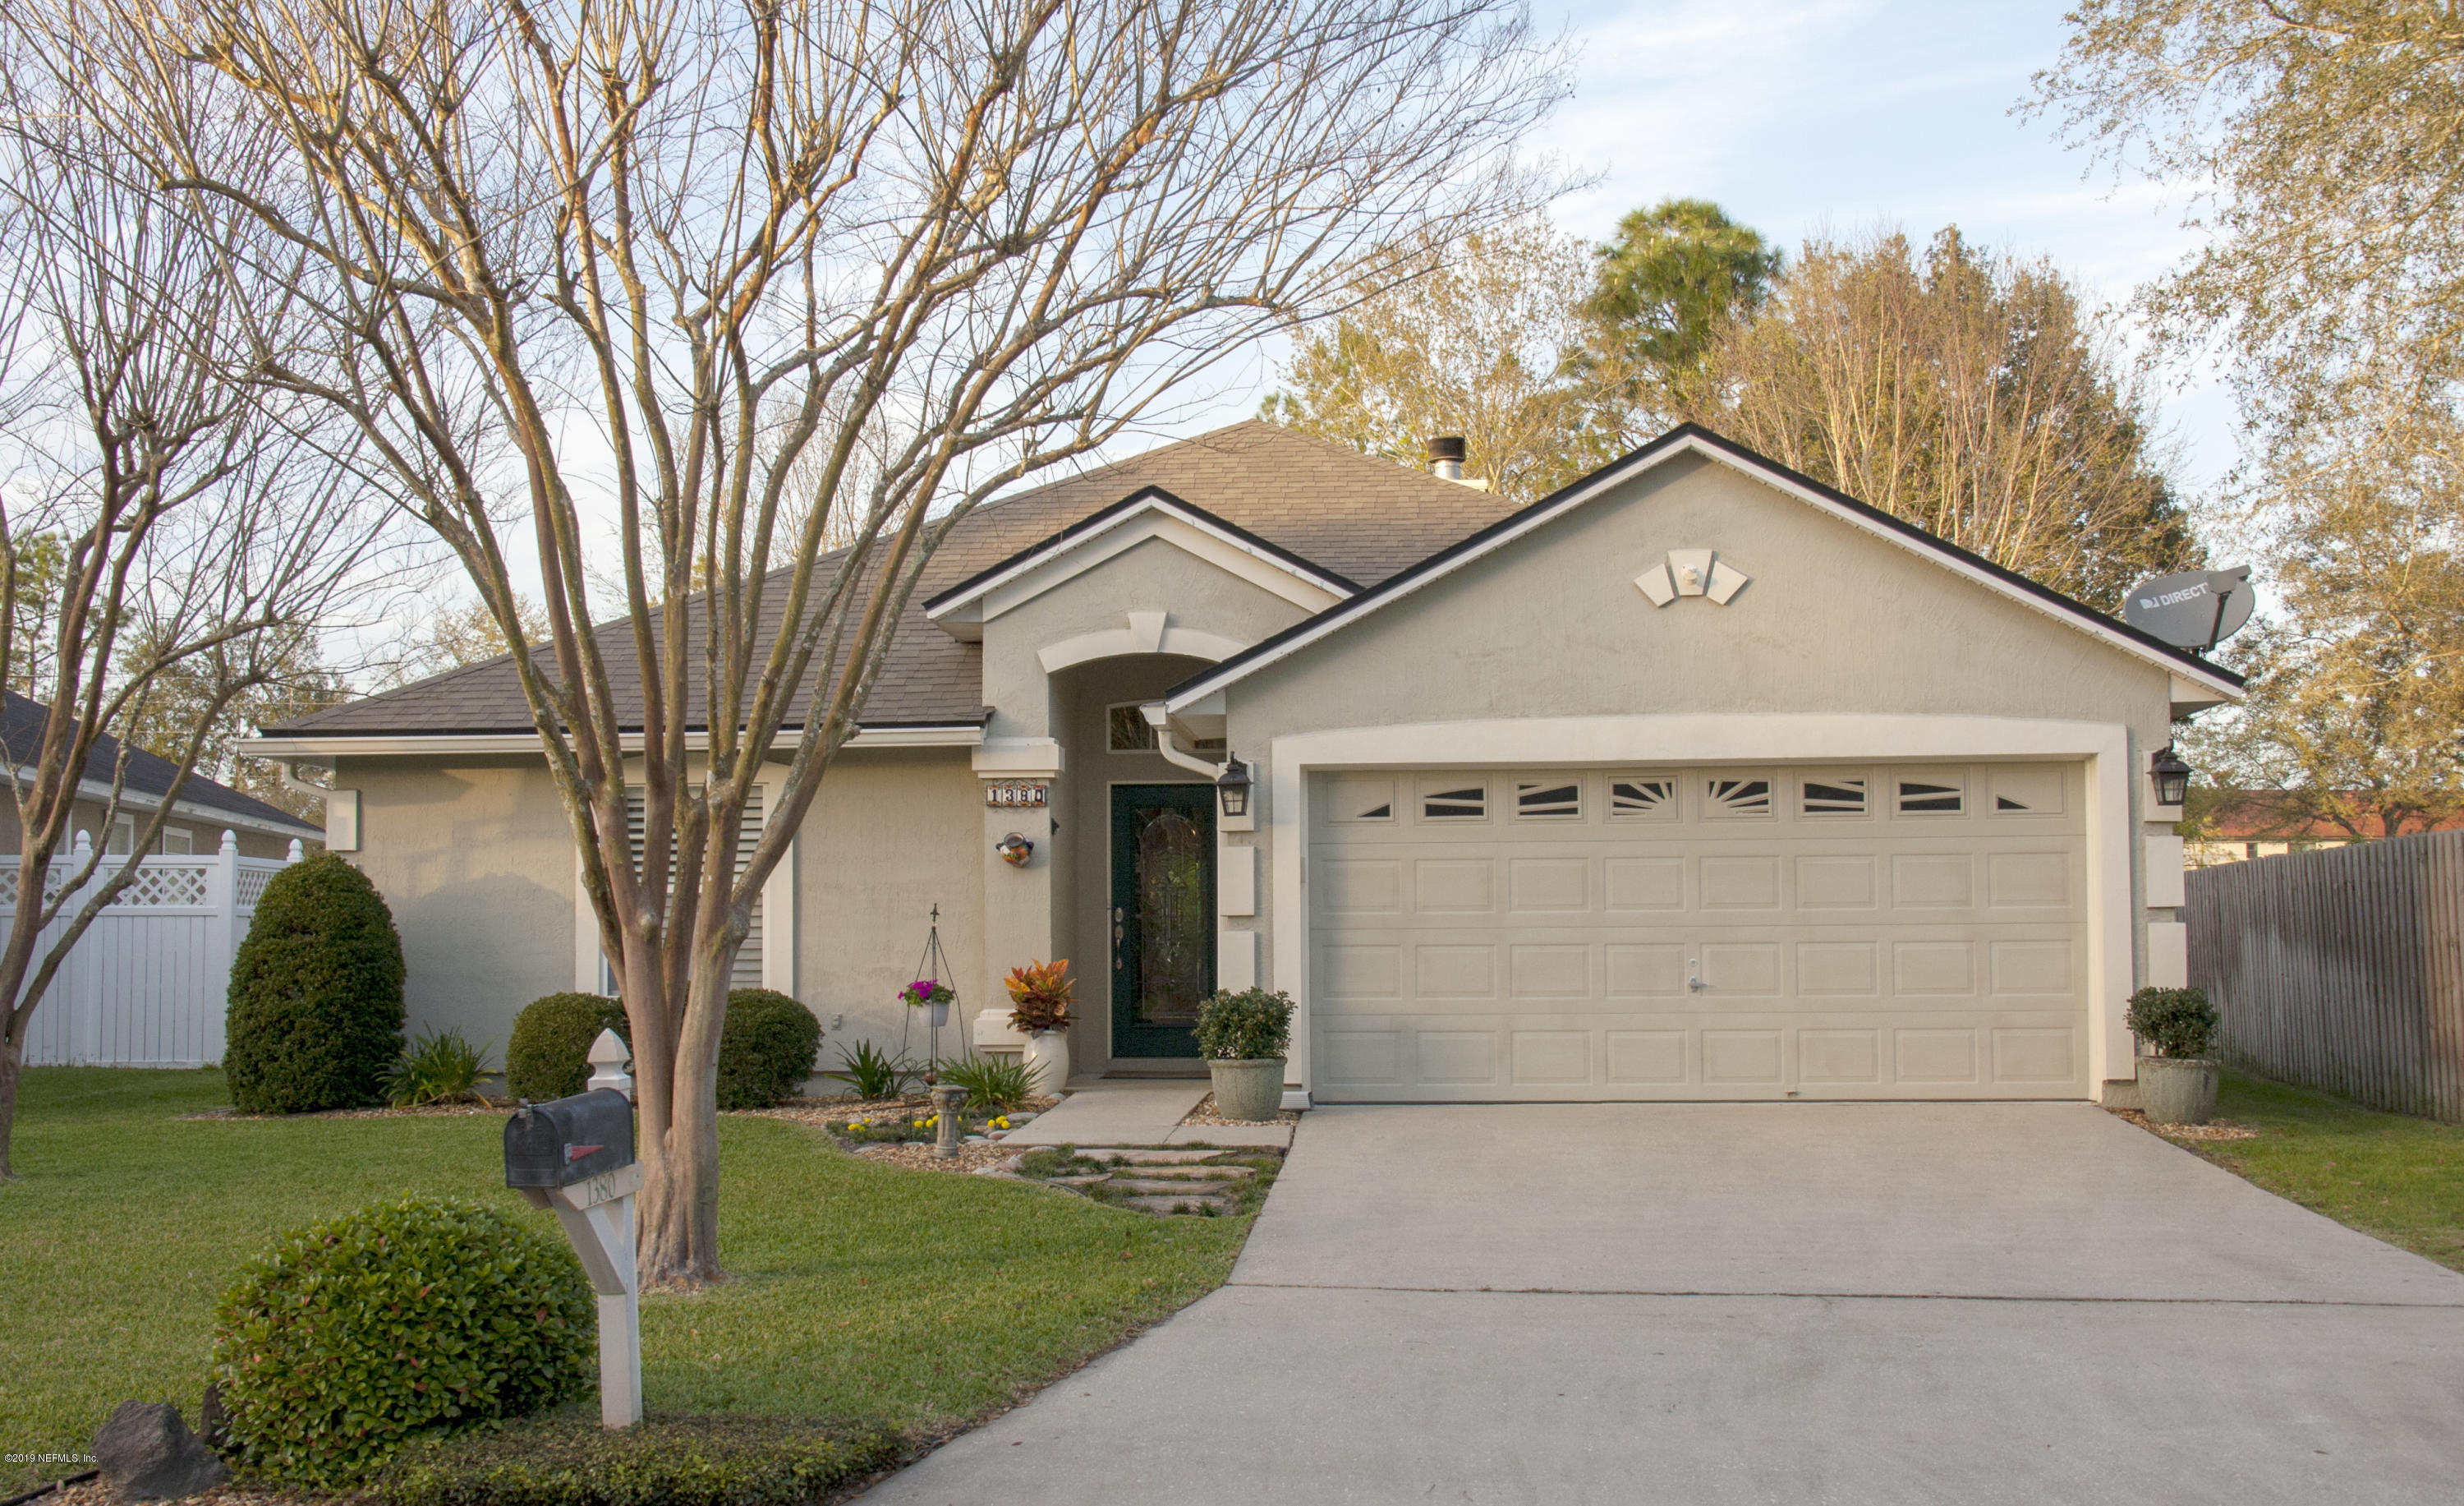 1380  SHOOTINGSTAR LN, Julington Creek in ST. JOHNS County, FL 32259 Home for Sale